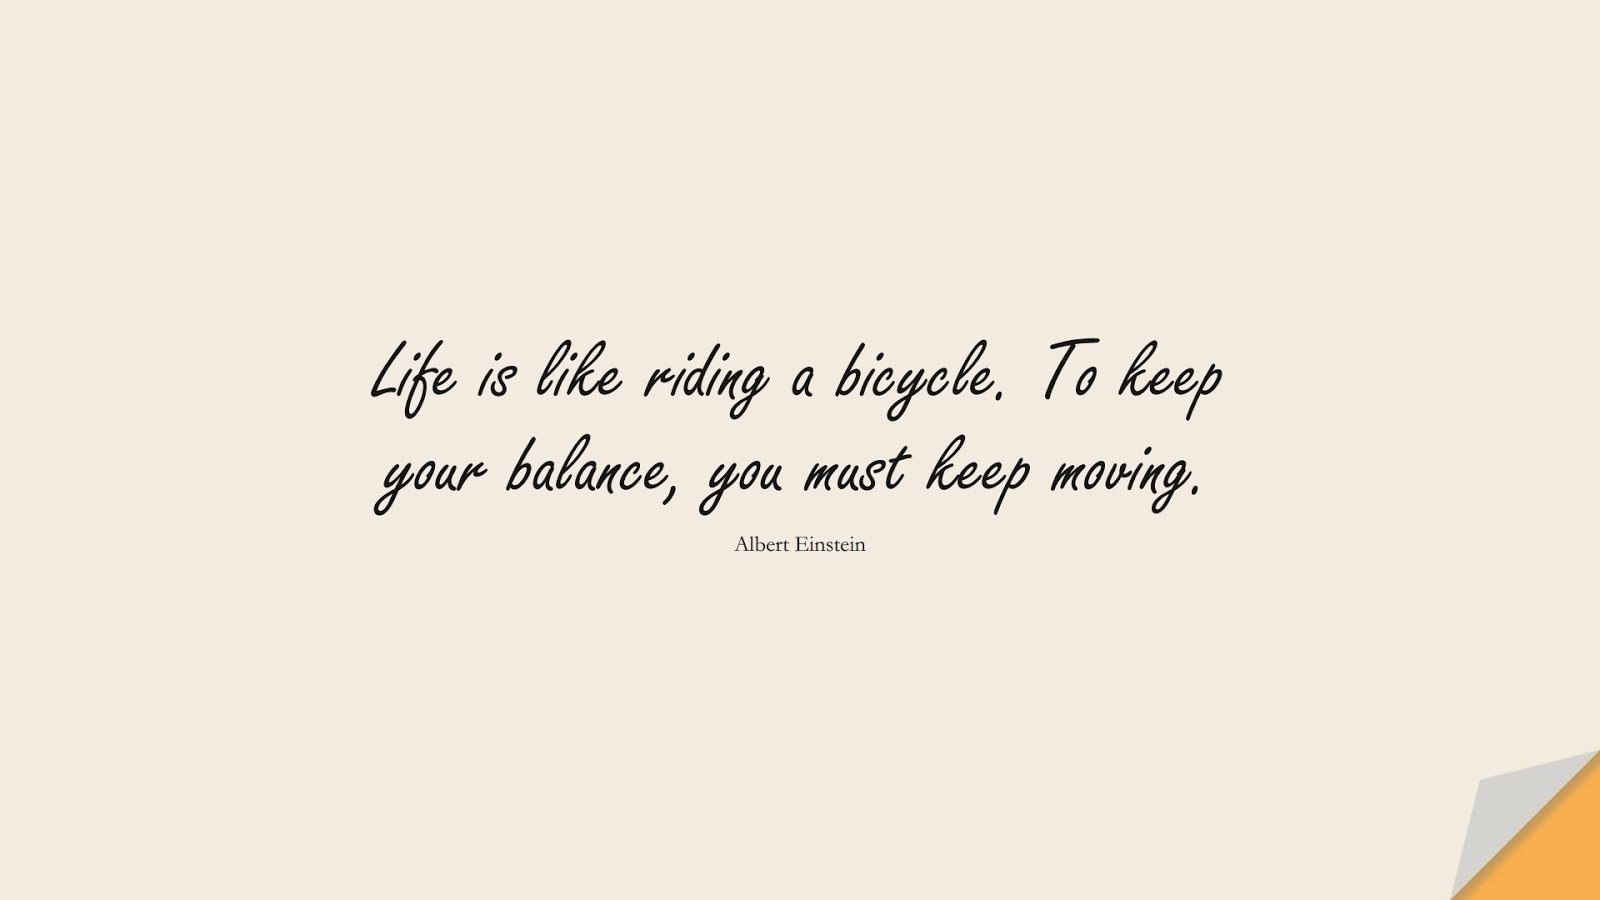 Life is like riding a bicycle. To keep your balance, you must keep moving. (Albert Einstein);  #FamousQuotes